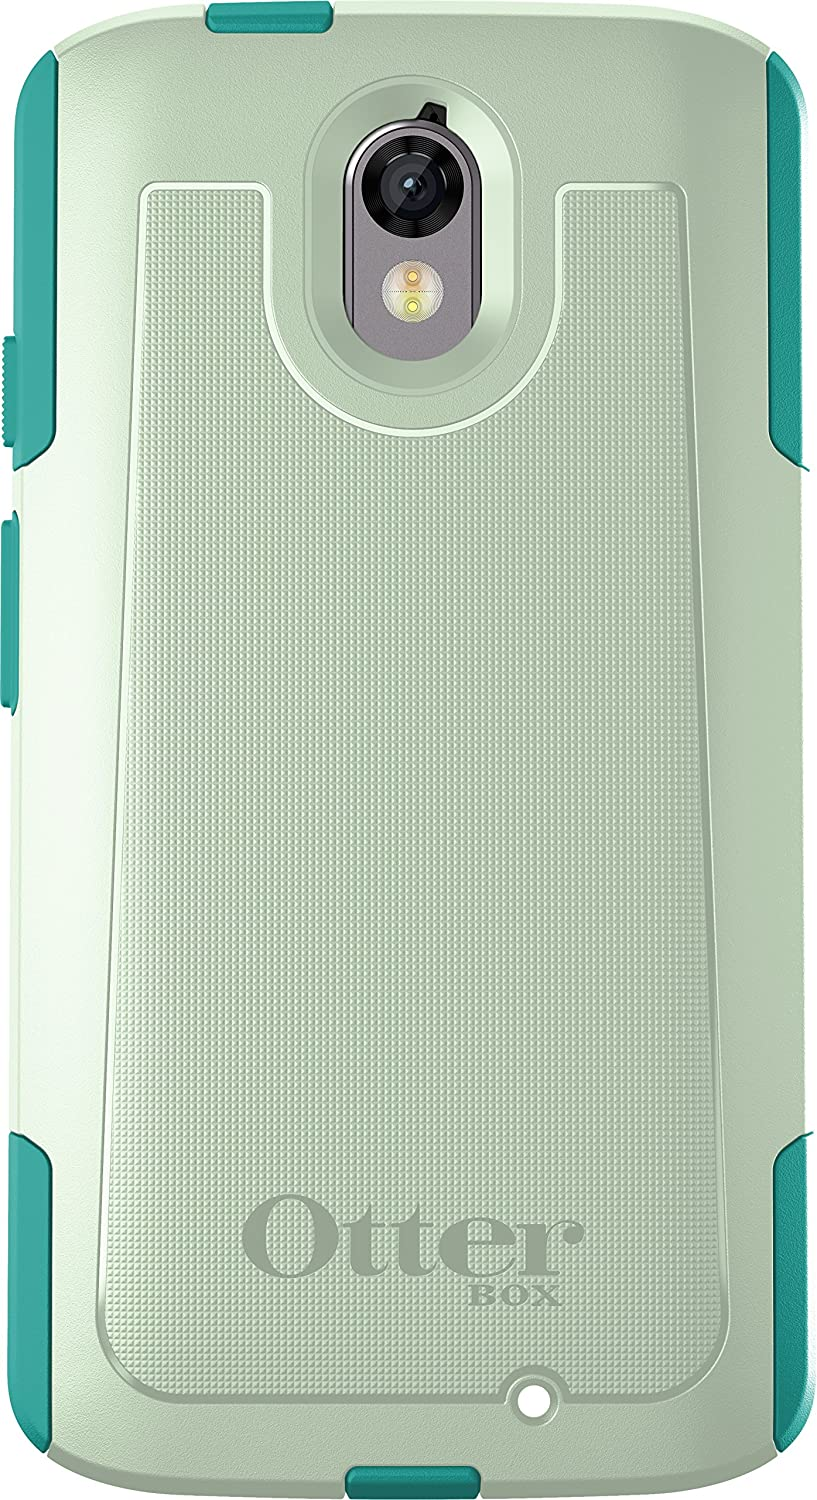 OtterBox COMMUTER Case for MOTOROLA DROID TURBO 2 - Retail Packaging - COOL MELON (SAGE GREEN/LIGHT TEAL)